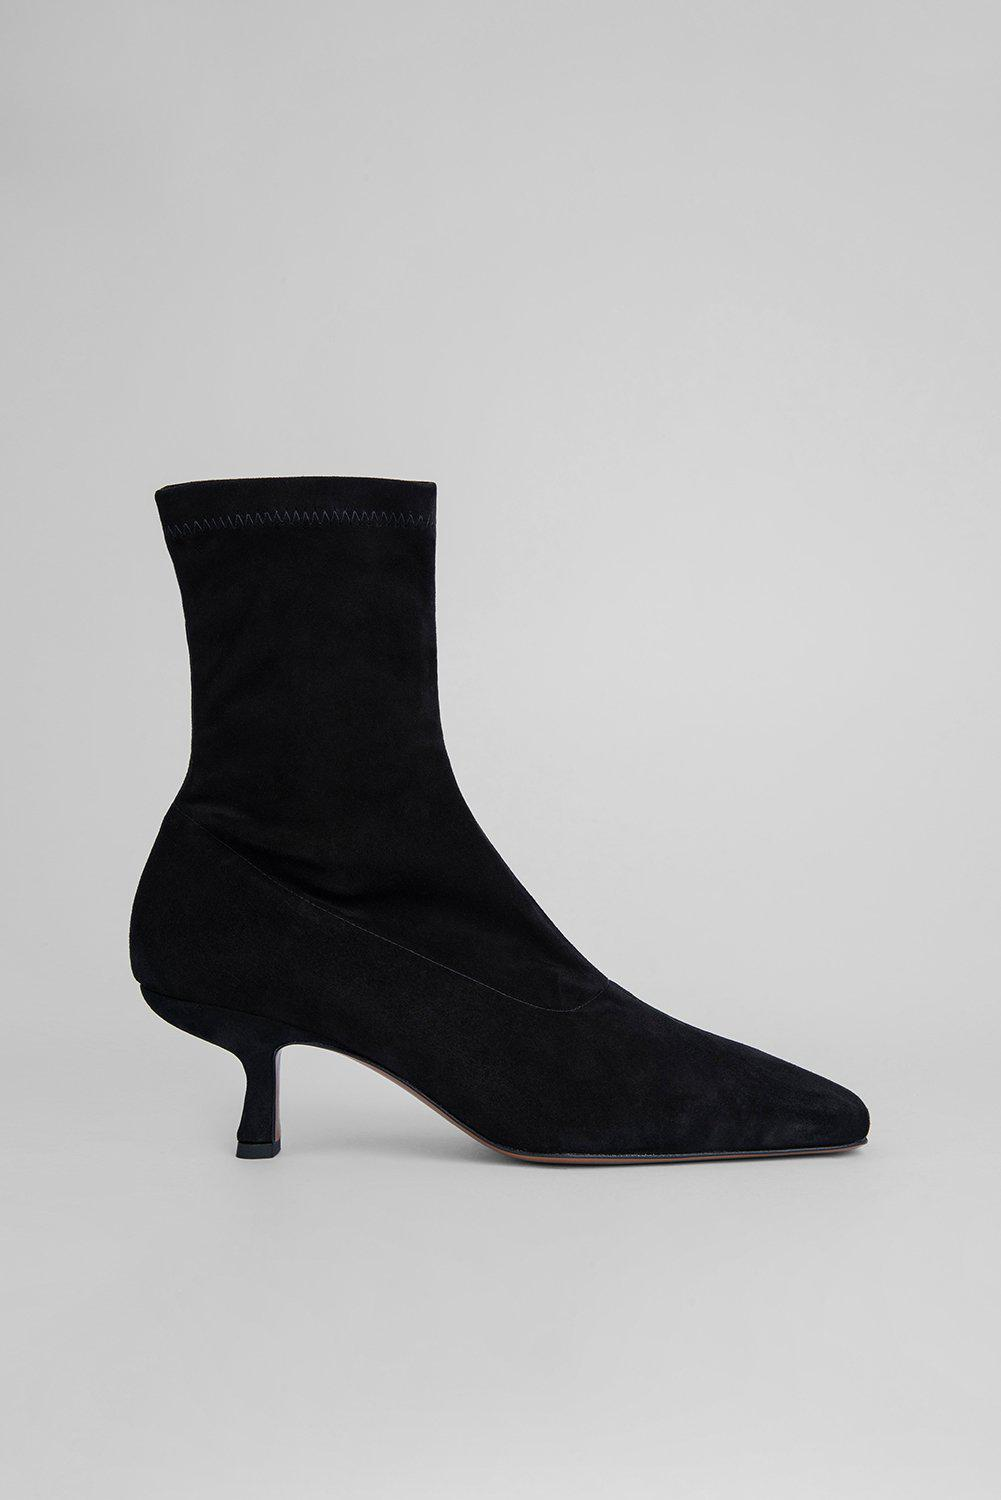 Audrey Black Stretch Suede Leather